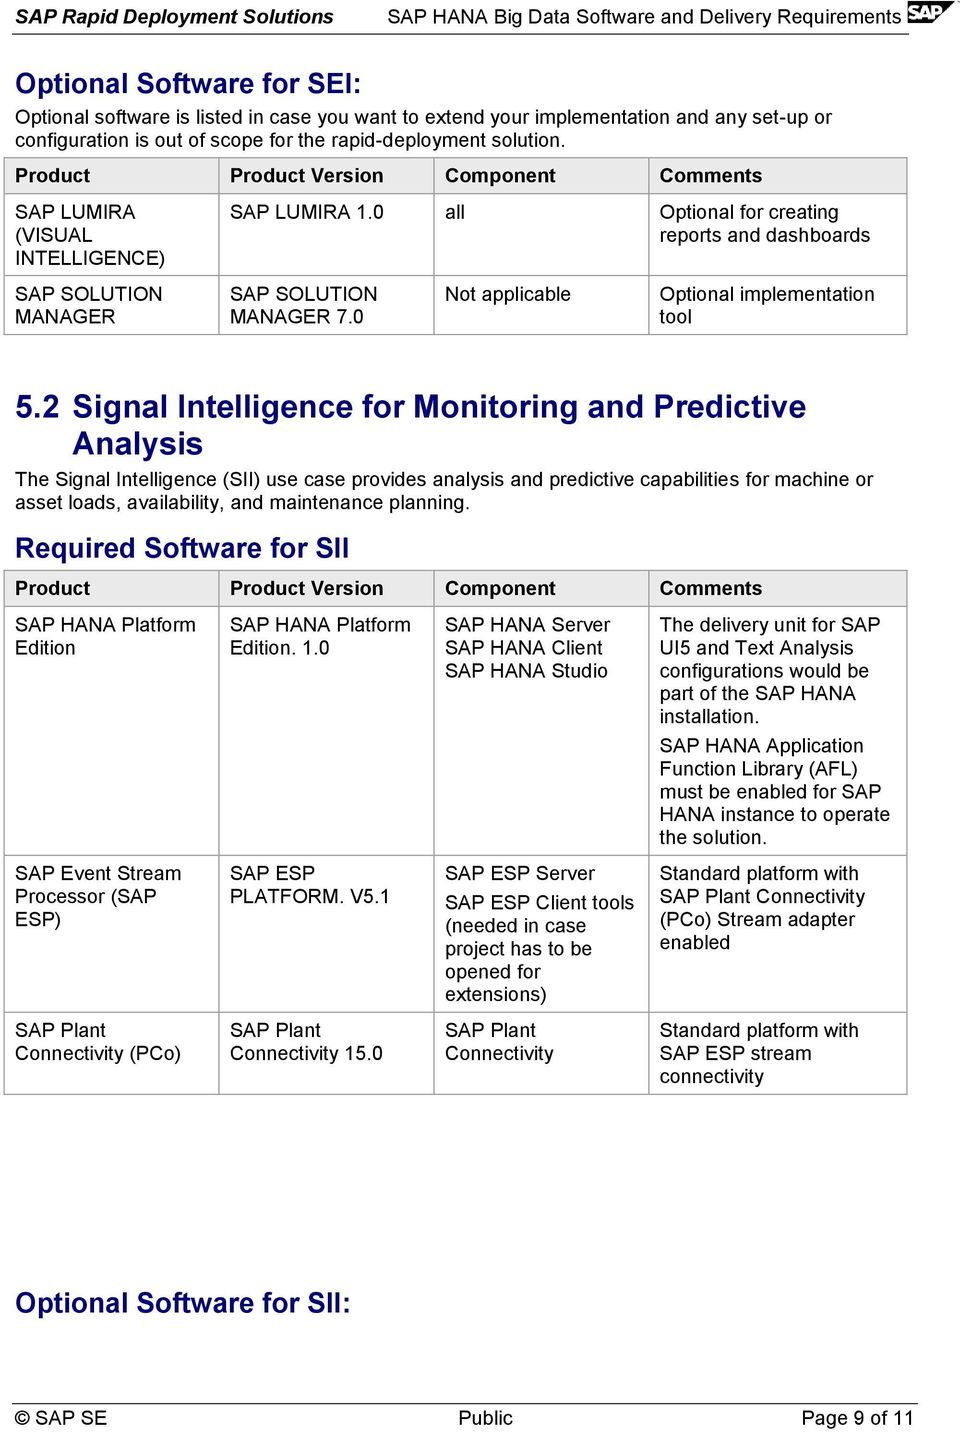 2 Signal Intelligence for Monitoring and Predictive Analysis The Signal Intelligence (SII) use case provides analysis and predictive capabilities for machine or asset loads, availability, and